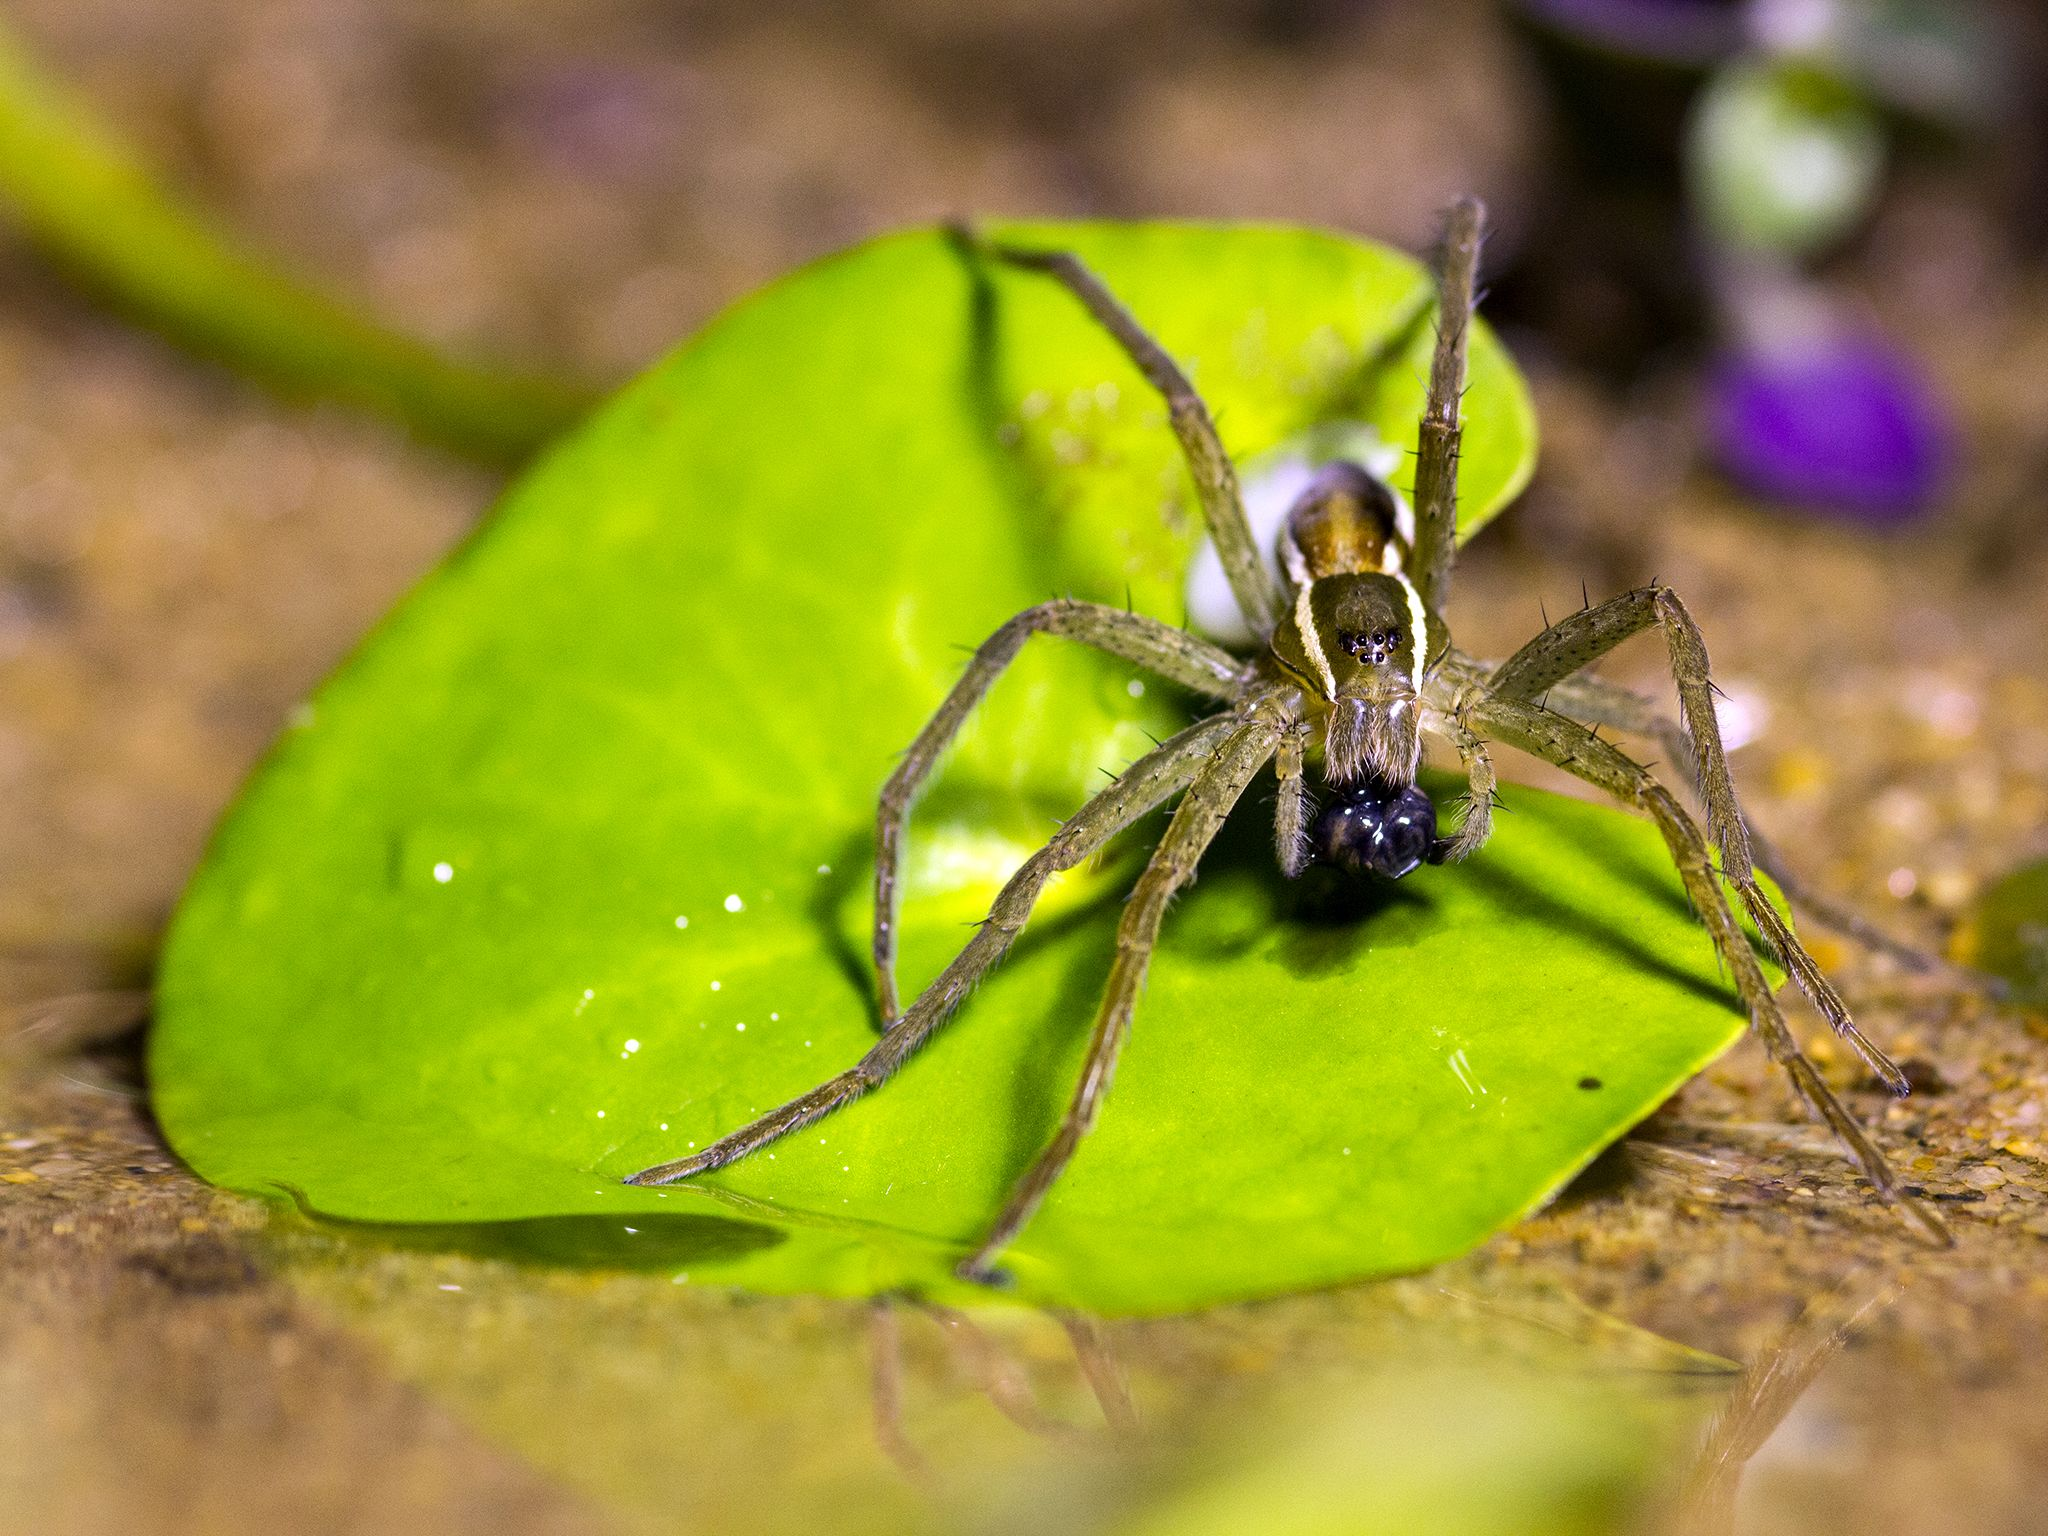 Durban, Kwazulu Natal, South Africa: Medium shot of the fishing spider. These spiders are... [Photo of the day - March 2016]